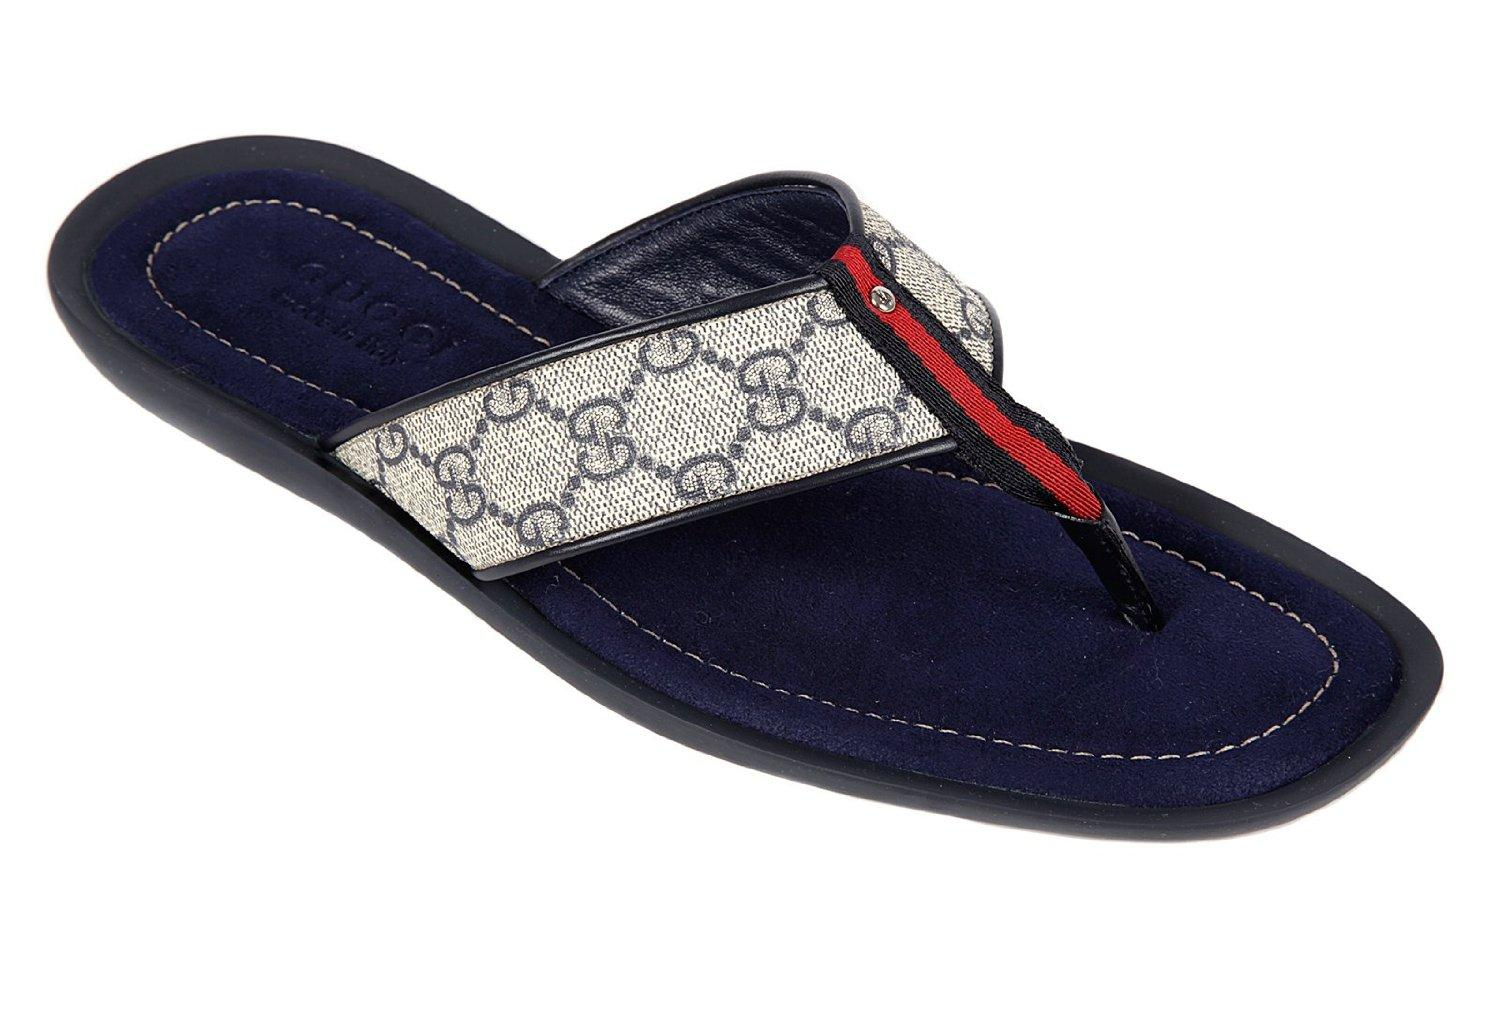 Flip Flops Leather blu Sandals For Men With A Design Pattern On The